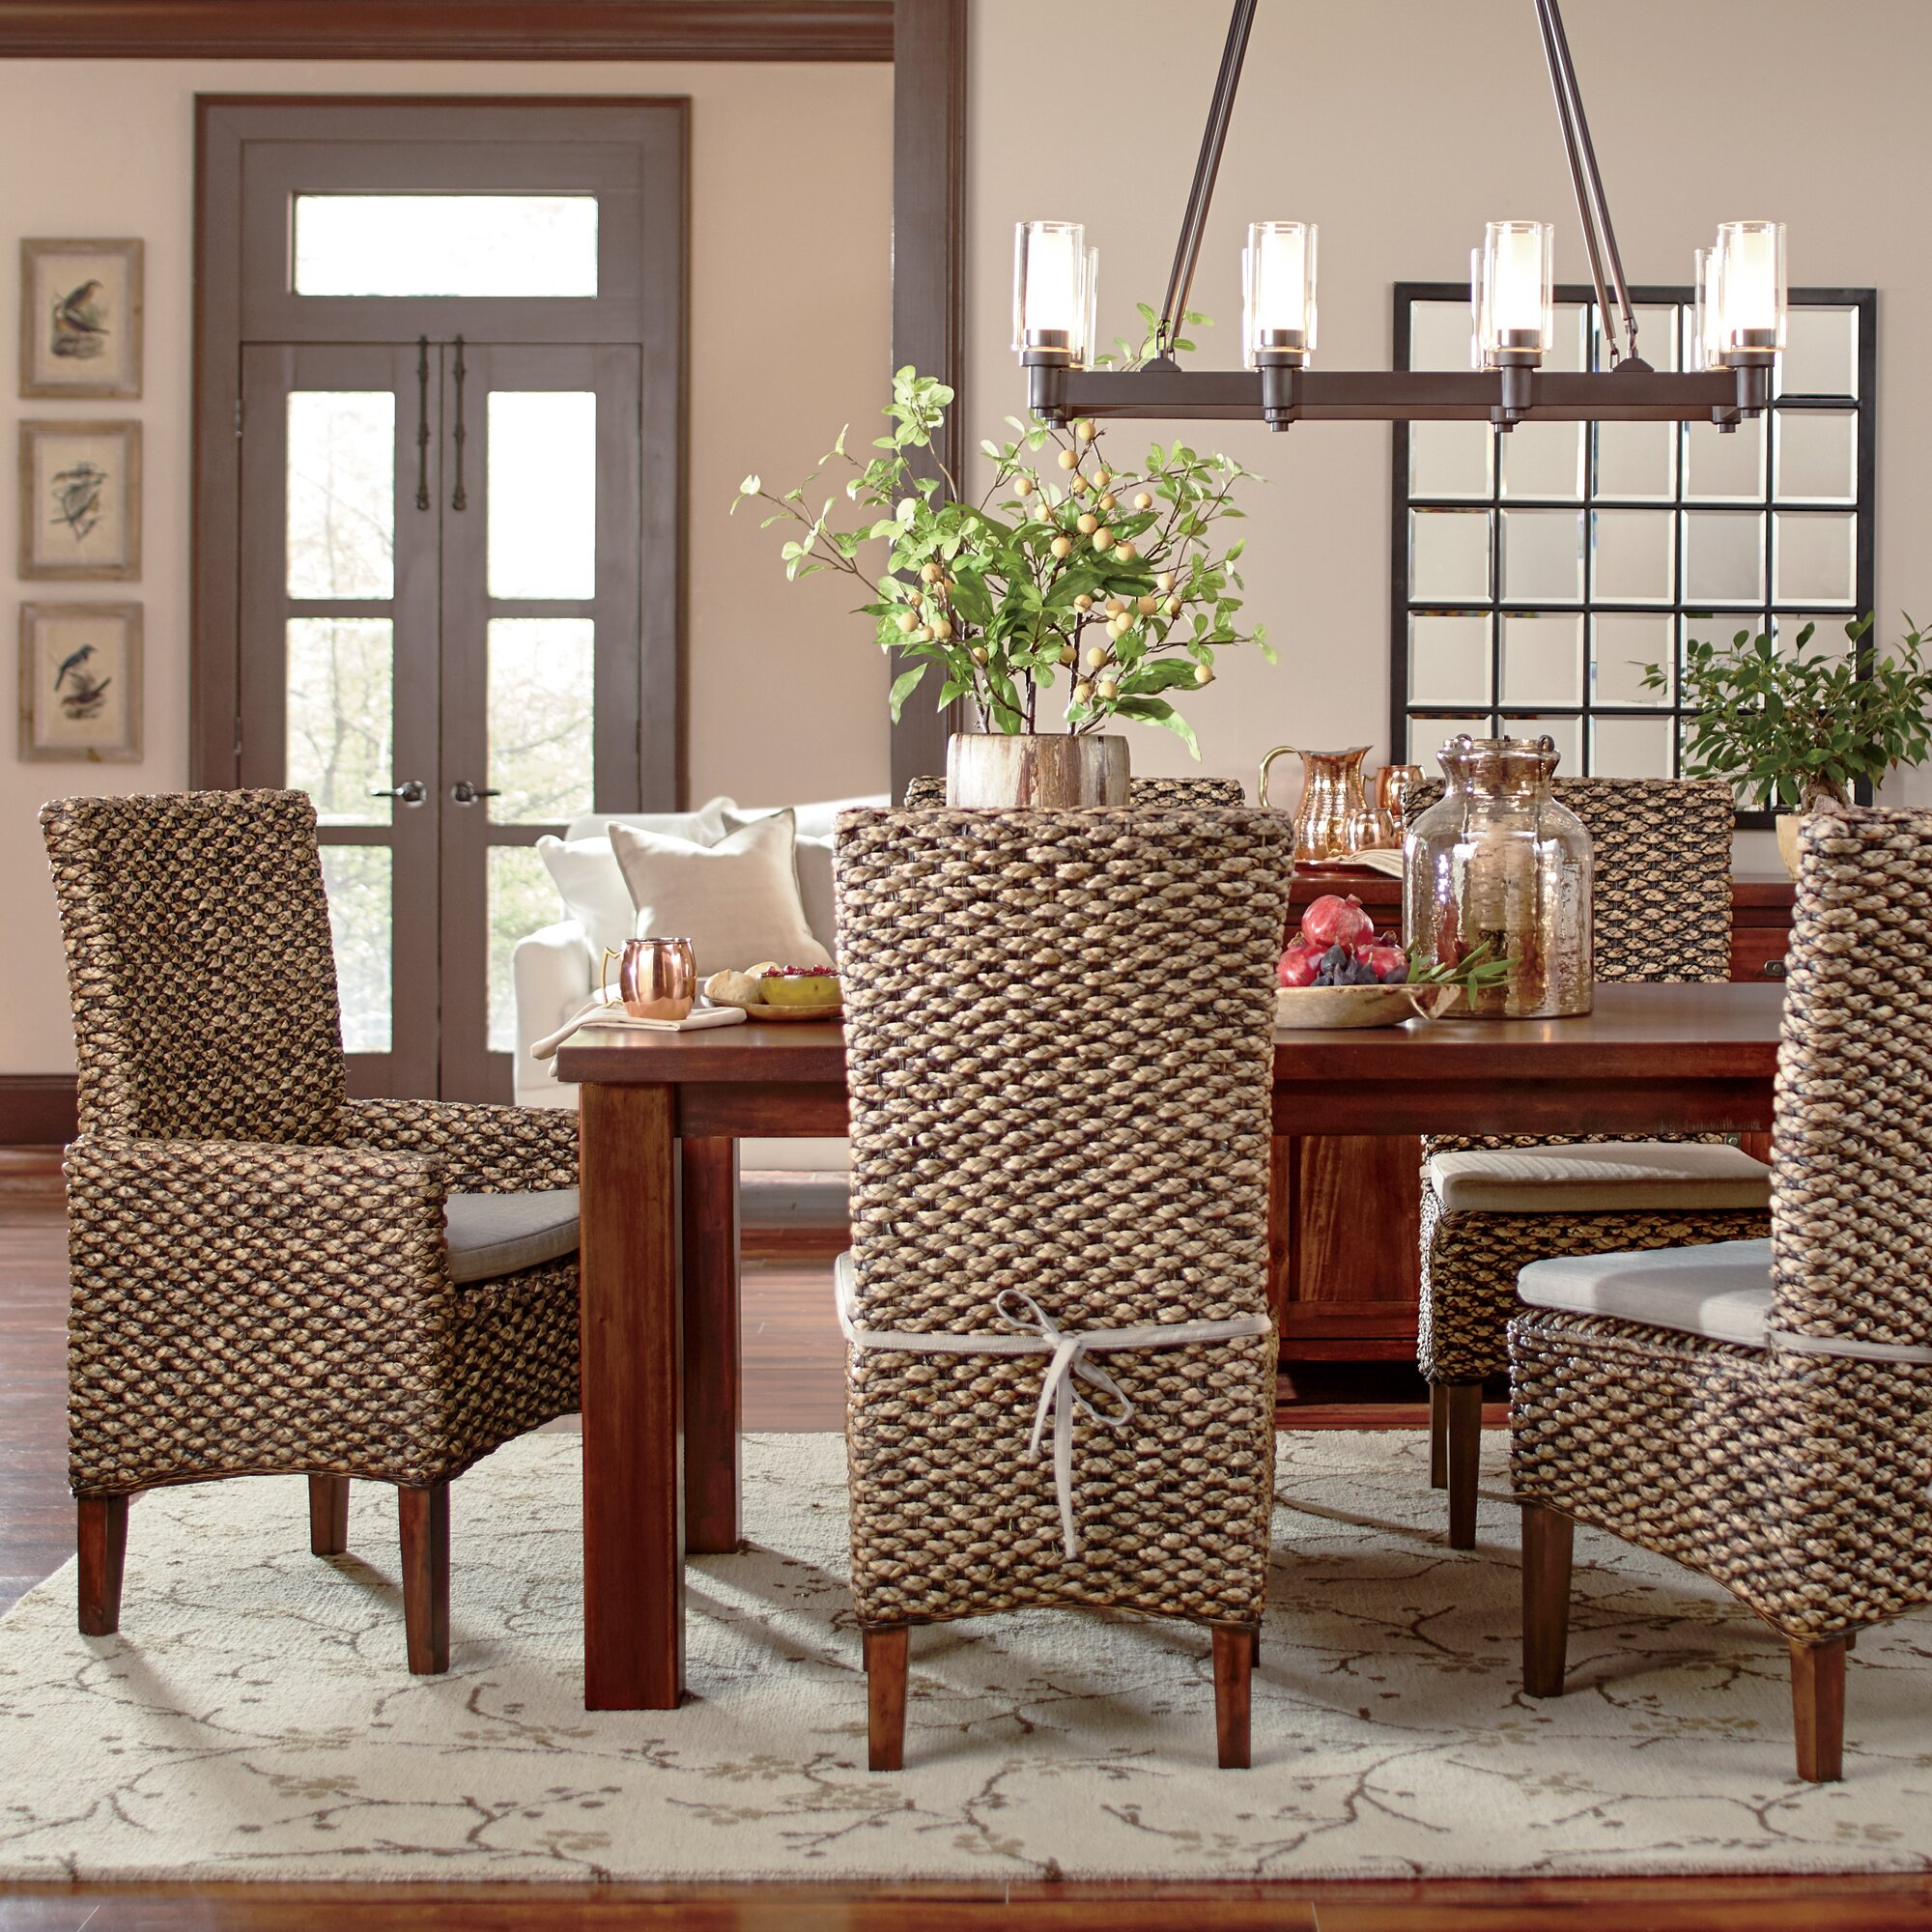 Woven Dining Chairs: Woven Seagrass Side Chairs